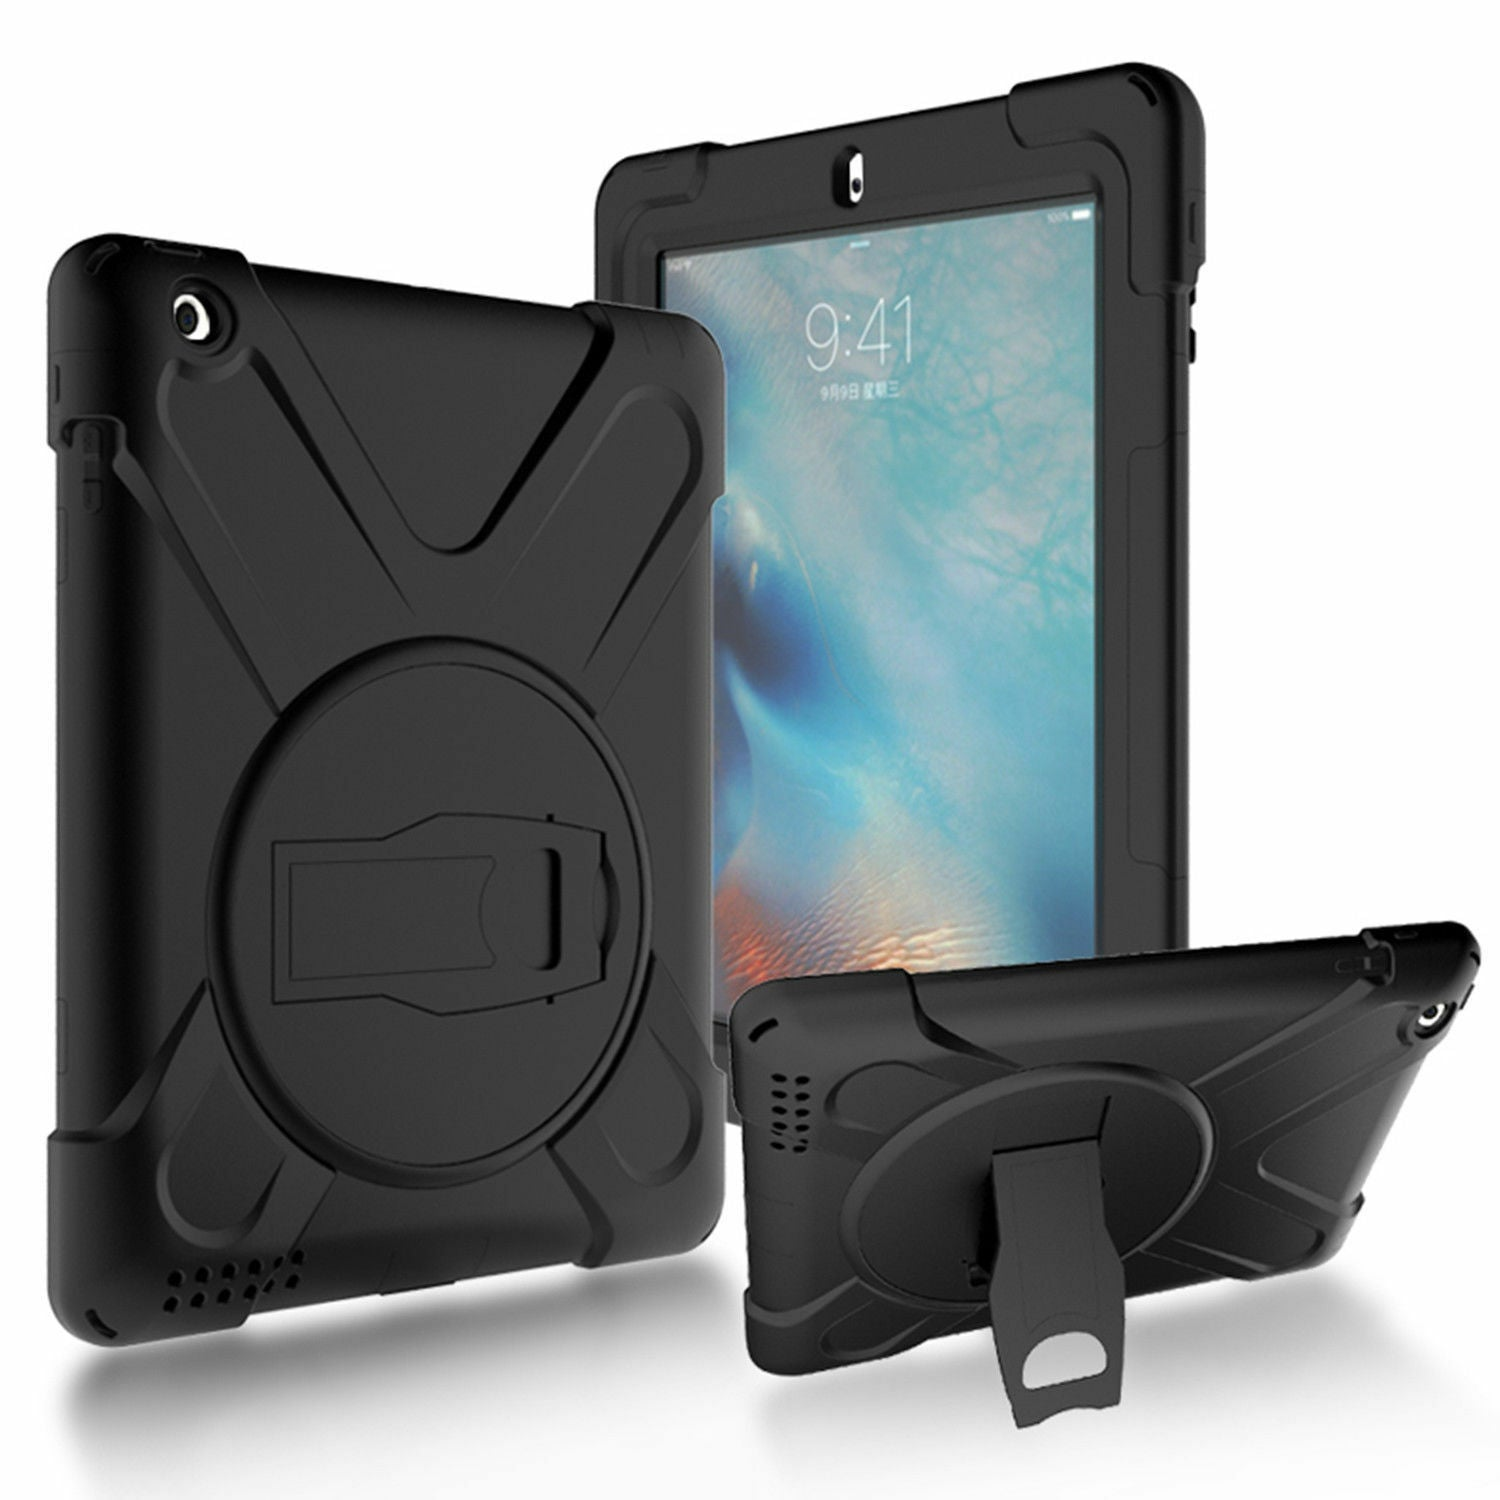 Heavy Duty Hybrid Shockproof Case Cover For iPad Air 2